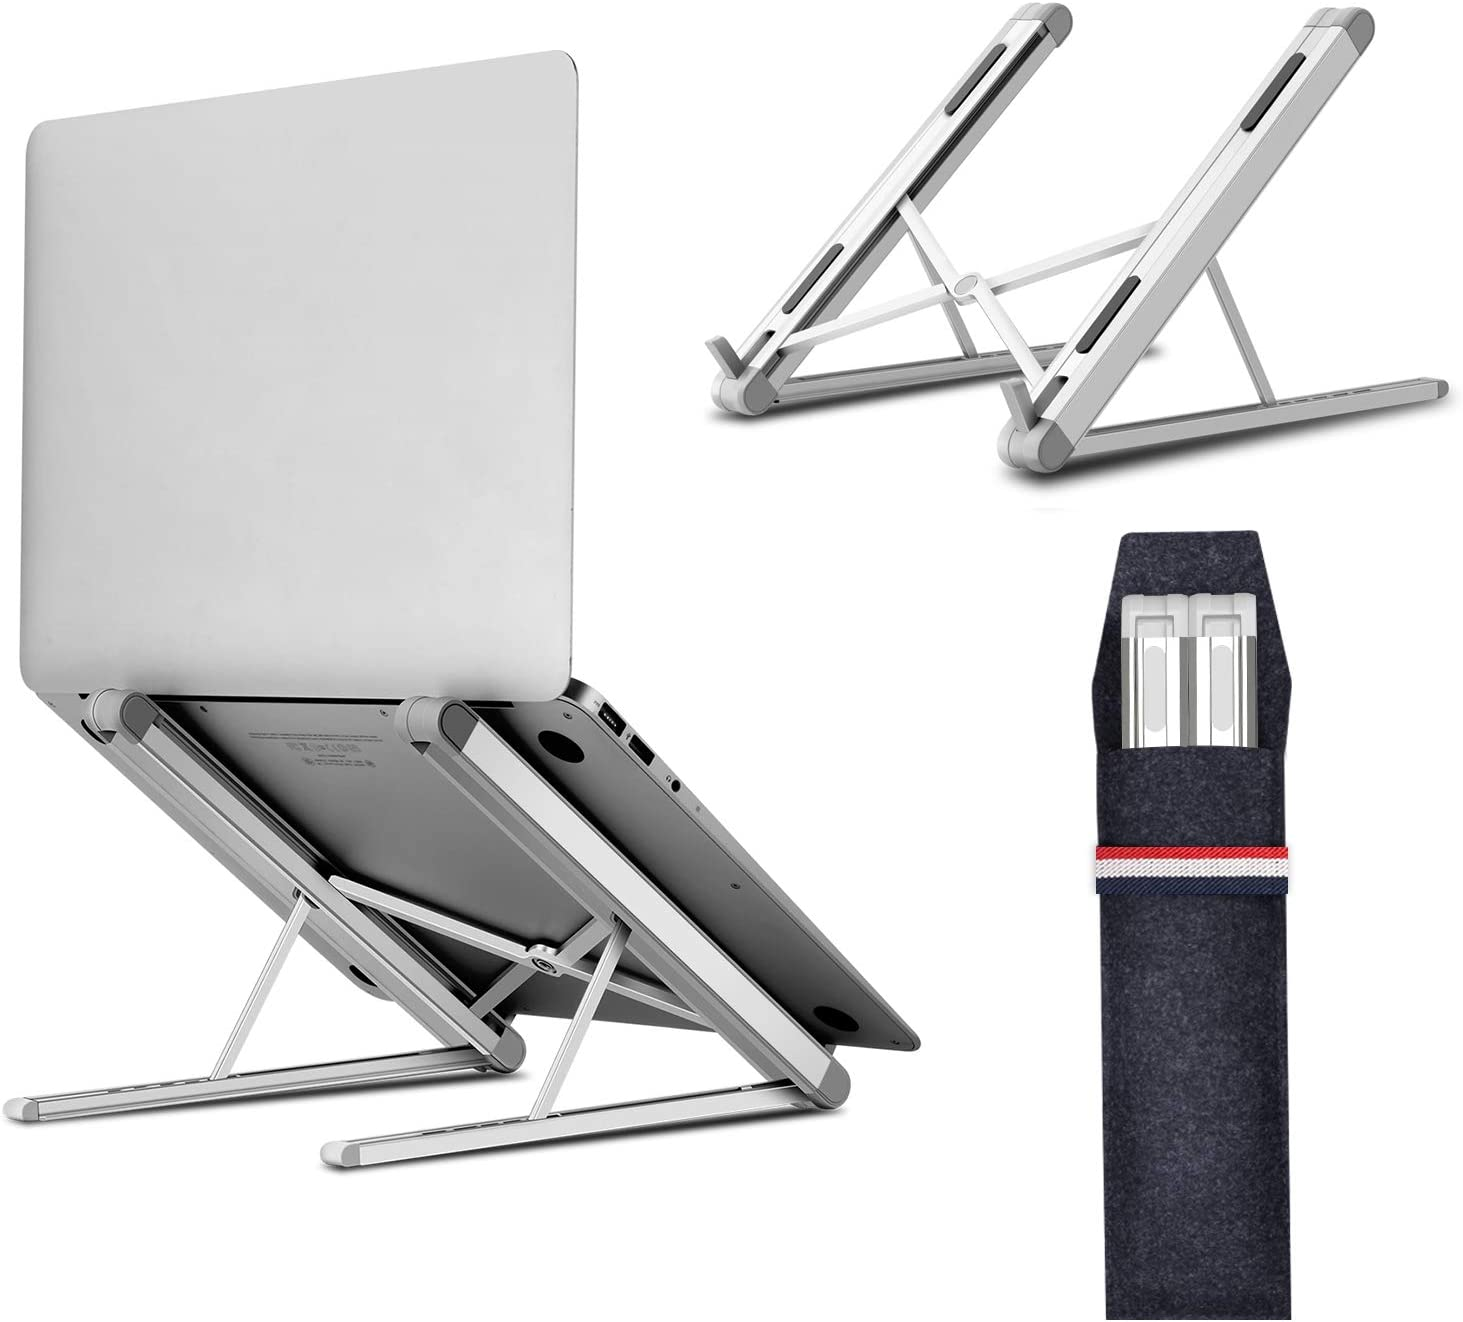 Jubor Laptop Stand, Portable Computer Laptop Mount, Aluminum Laptop Riser with 6 Levels Height Adjustment, Fully Collapsible, Supports up to 44lbs, Fits up to 17.3 Laptop - White